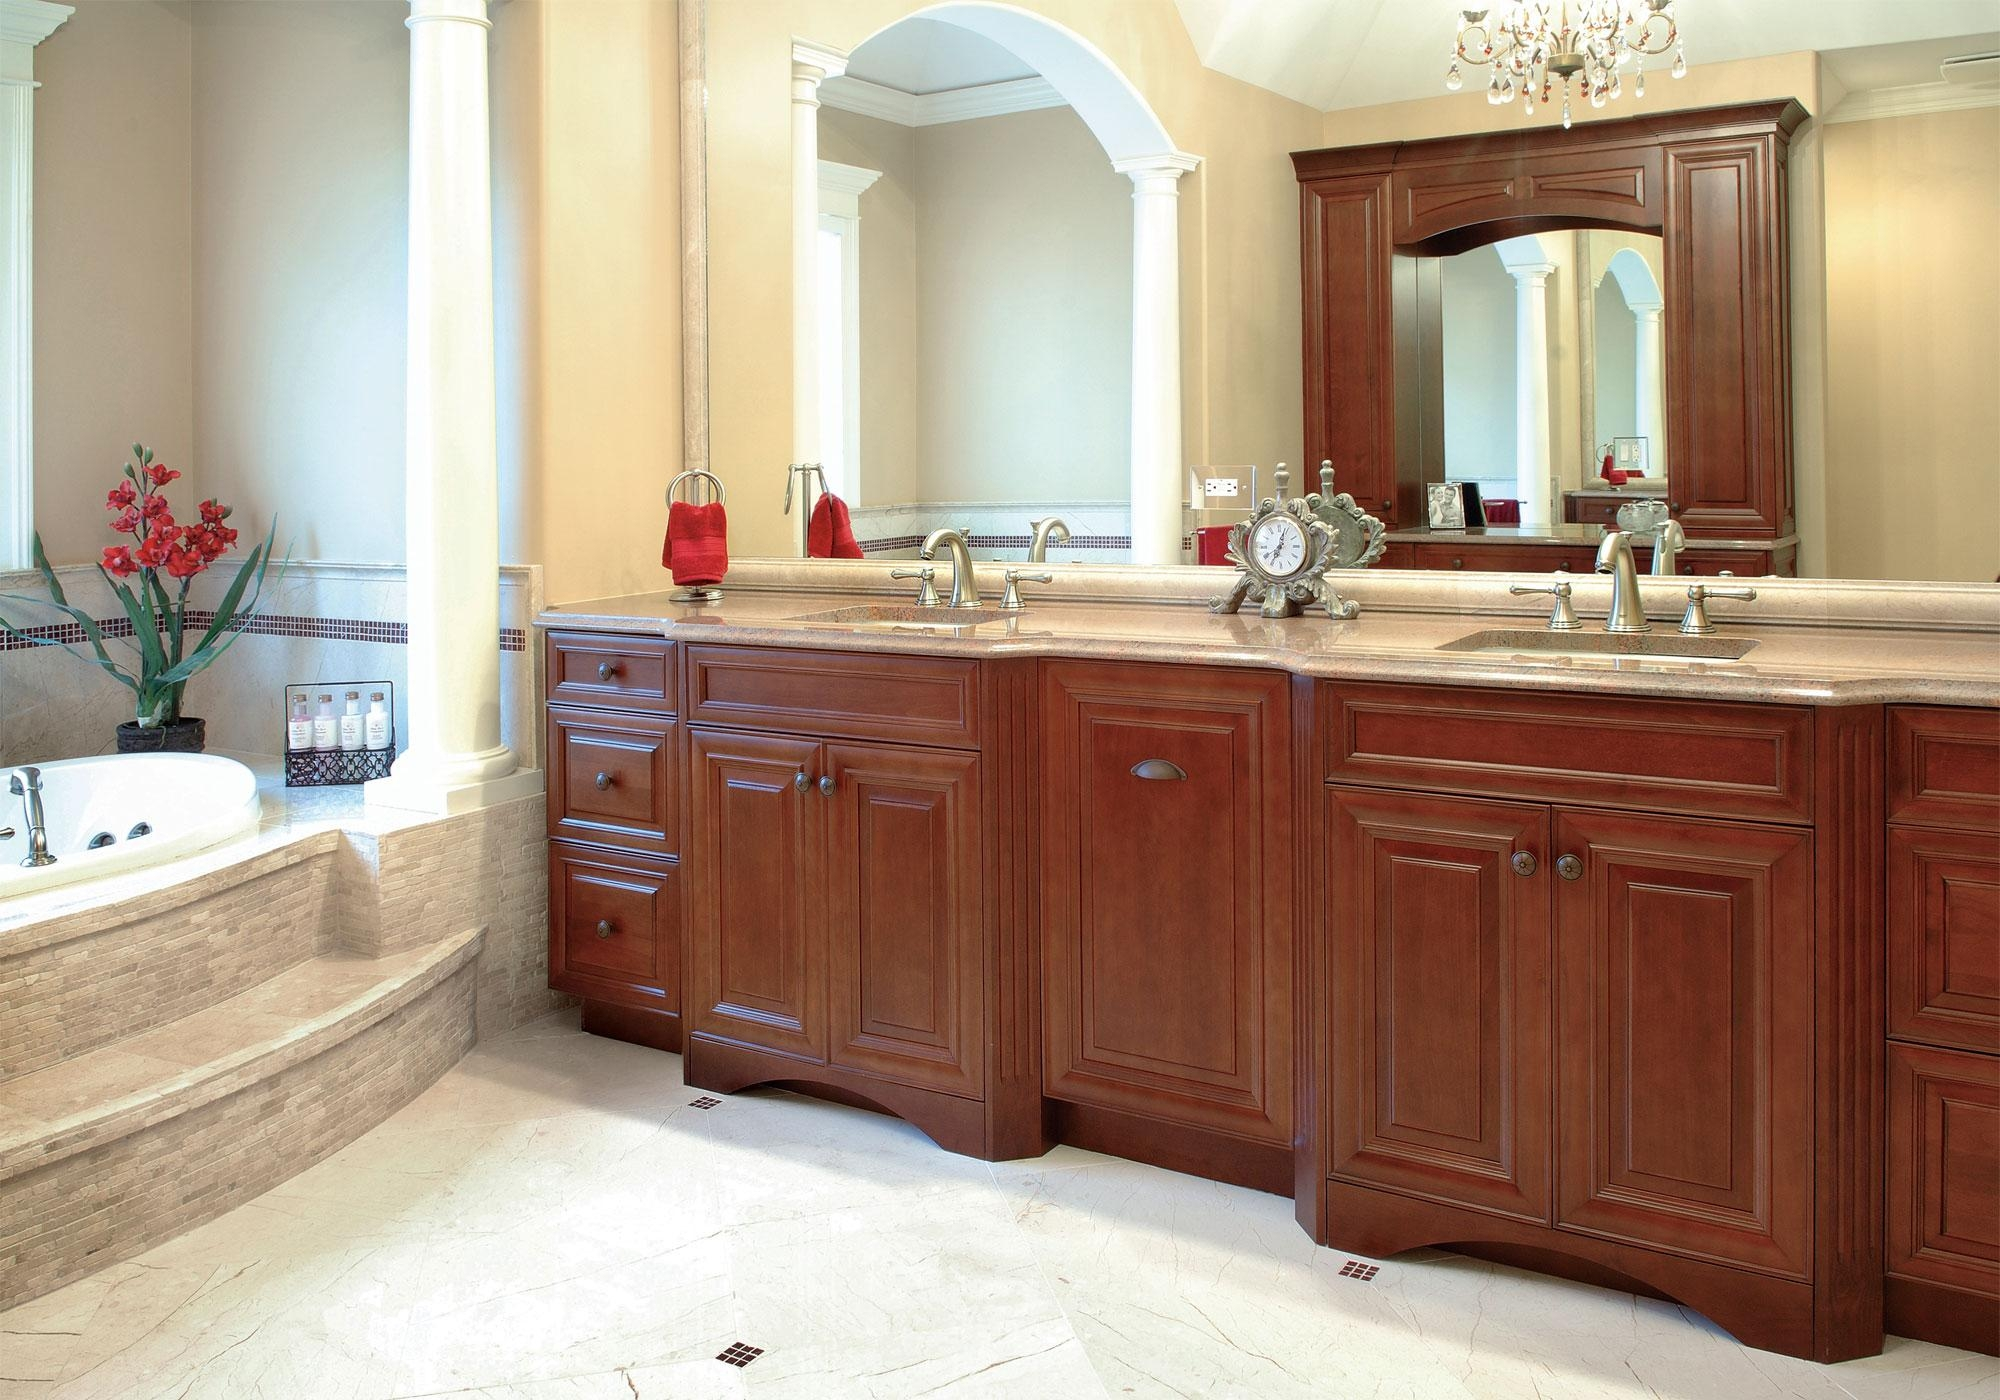 Kitchen Cabinets & Bathroom Vanity Cabinets – Advanced Cabinets Within Custom Bathroom Vanity Mirrors (Image 18 of 20)